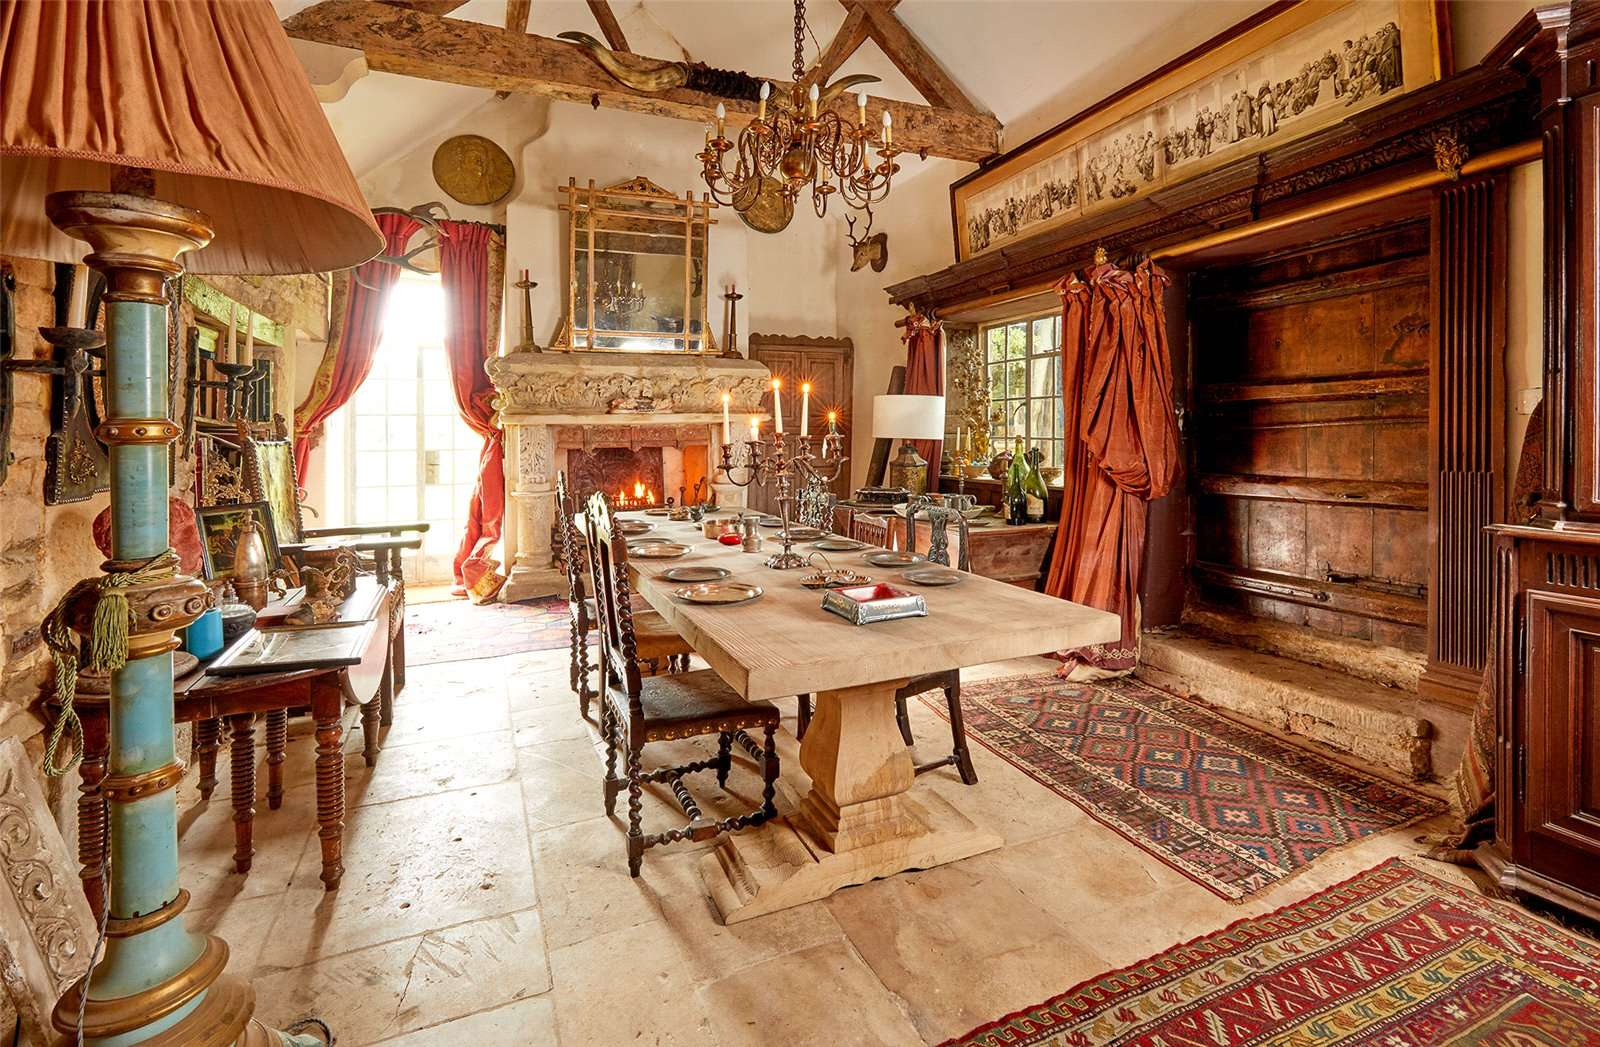 The Manor House, Chipping Norton, Oxfordshire - Dining Room